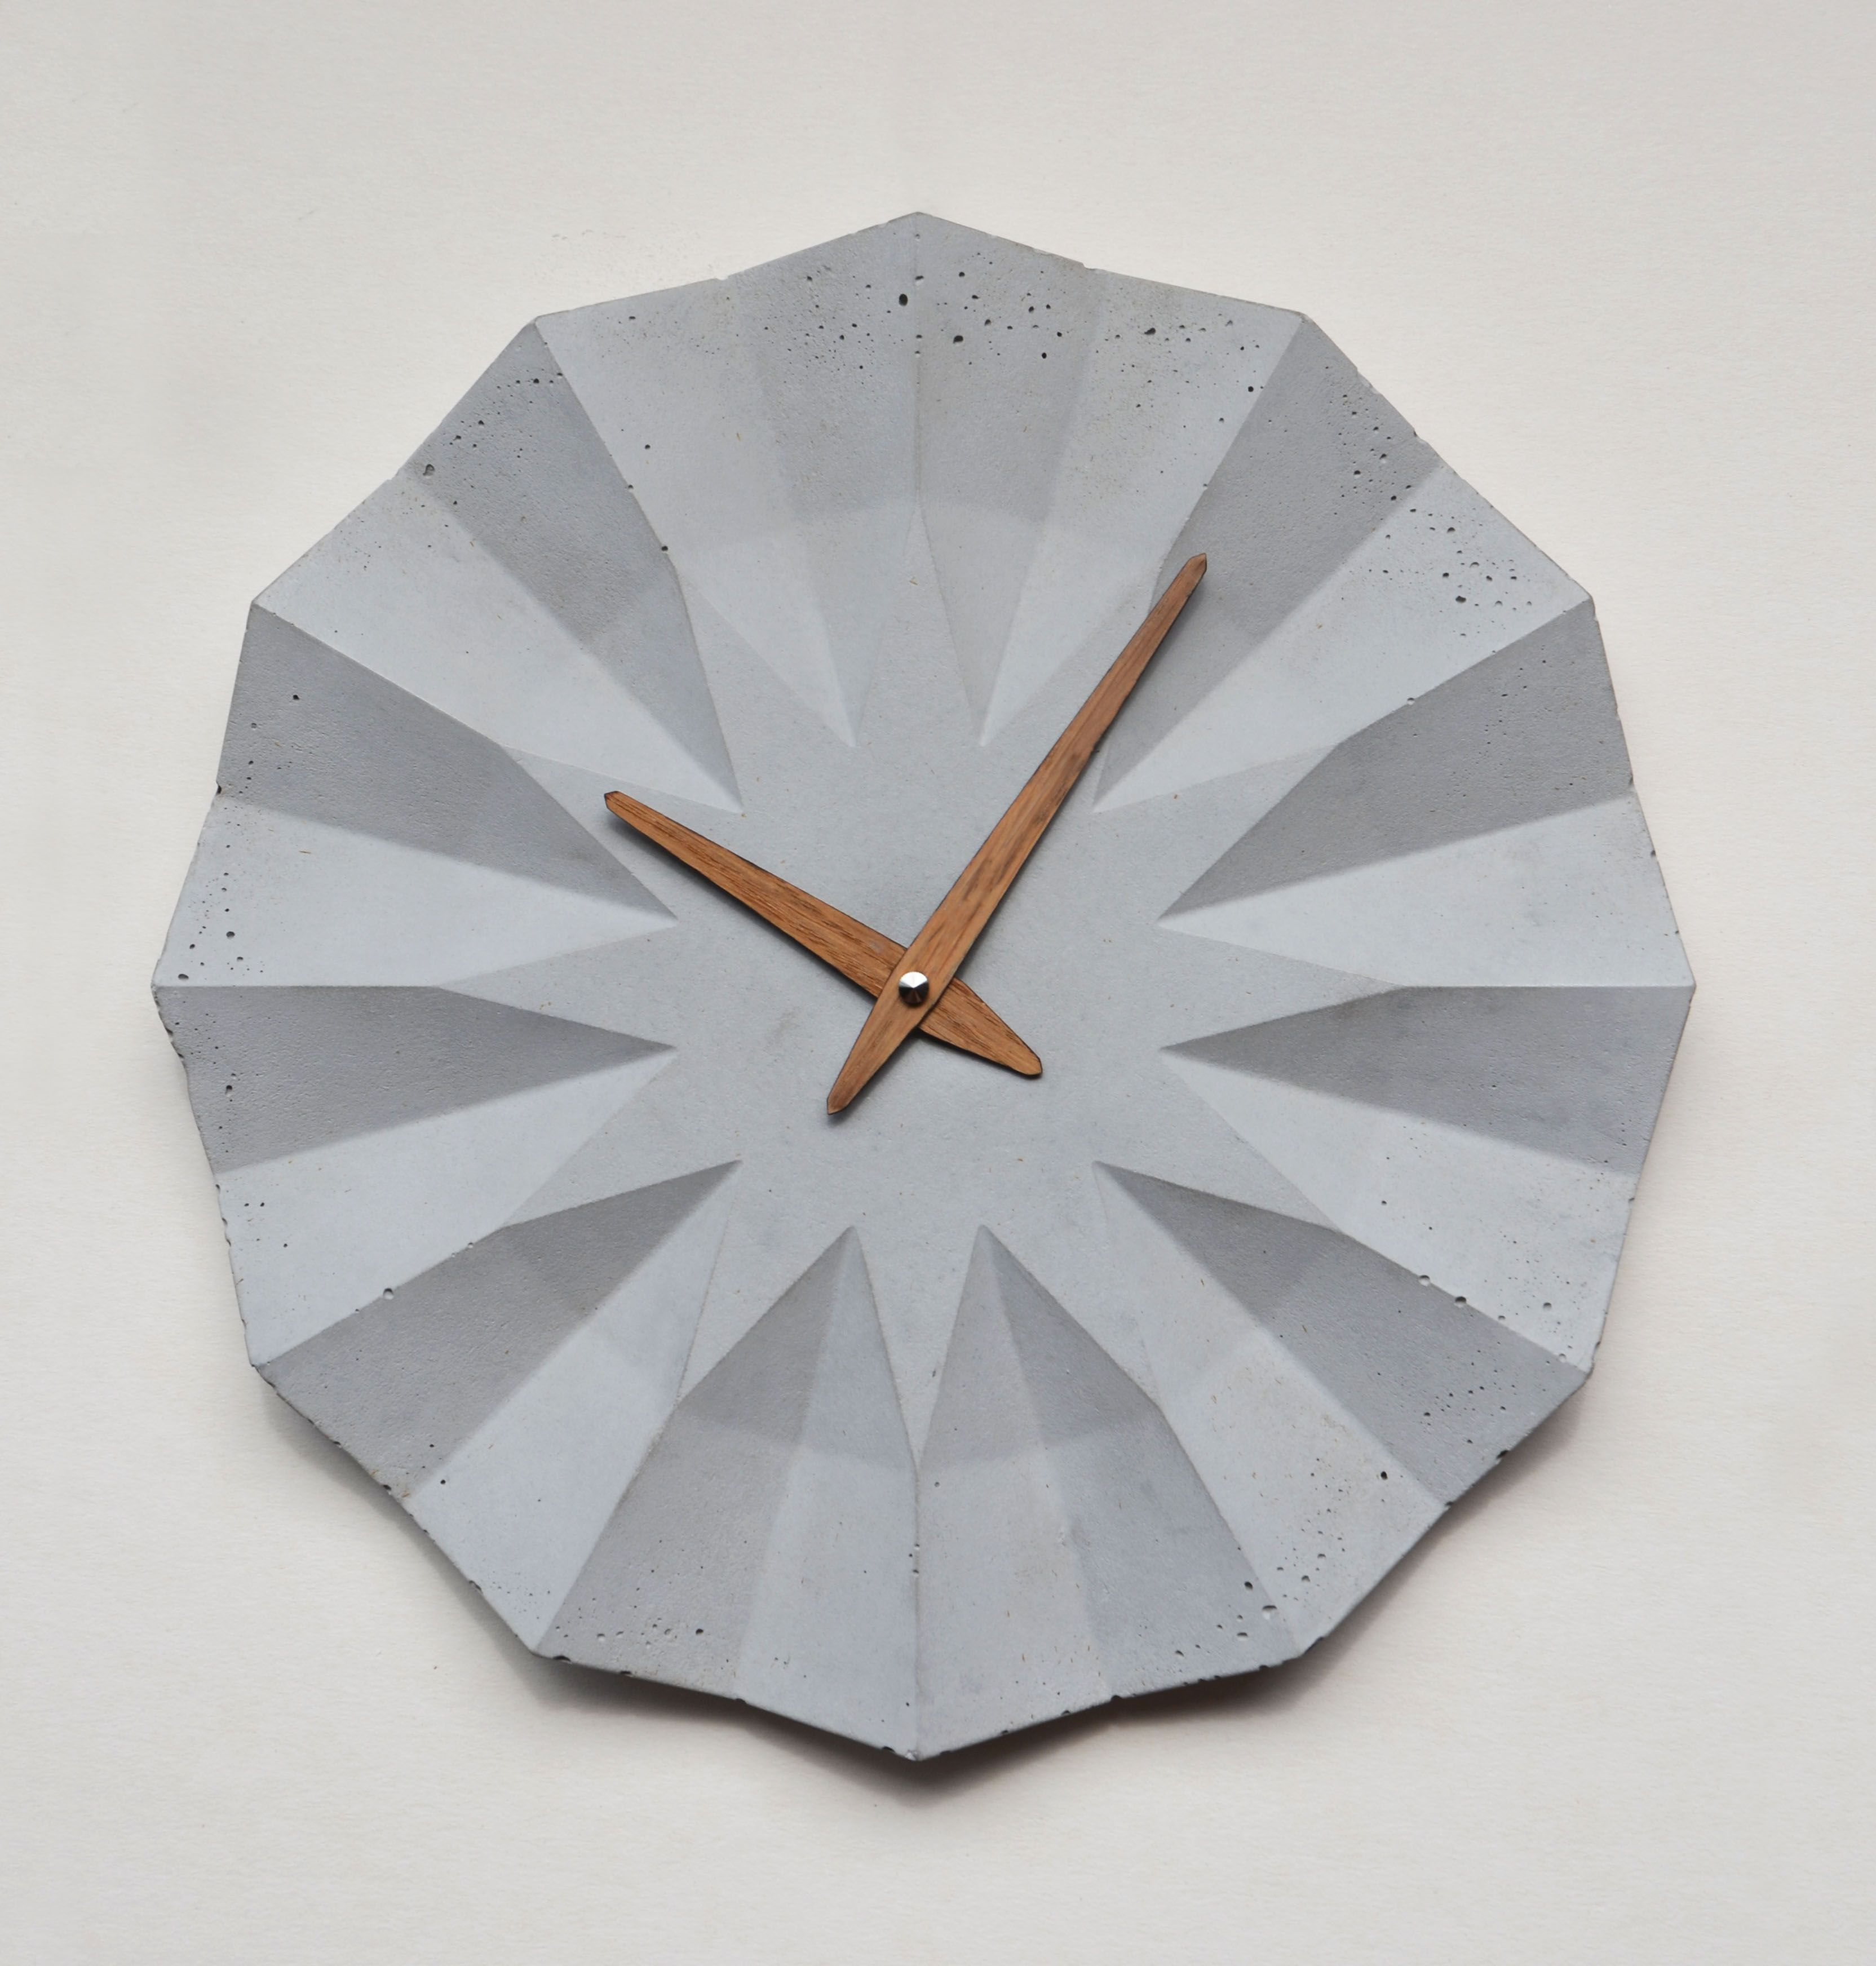 Concrete Clock With Oak Clockhand By Moha Design Cement Design Wall Clock Concrete Wall